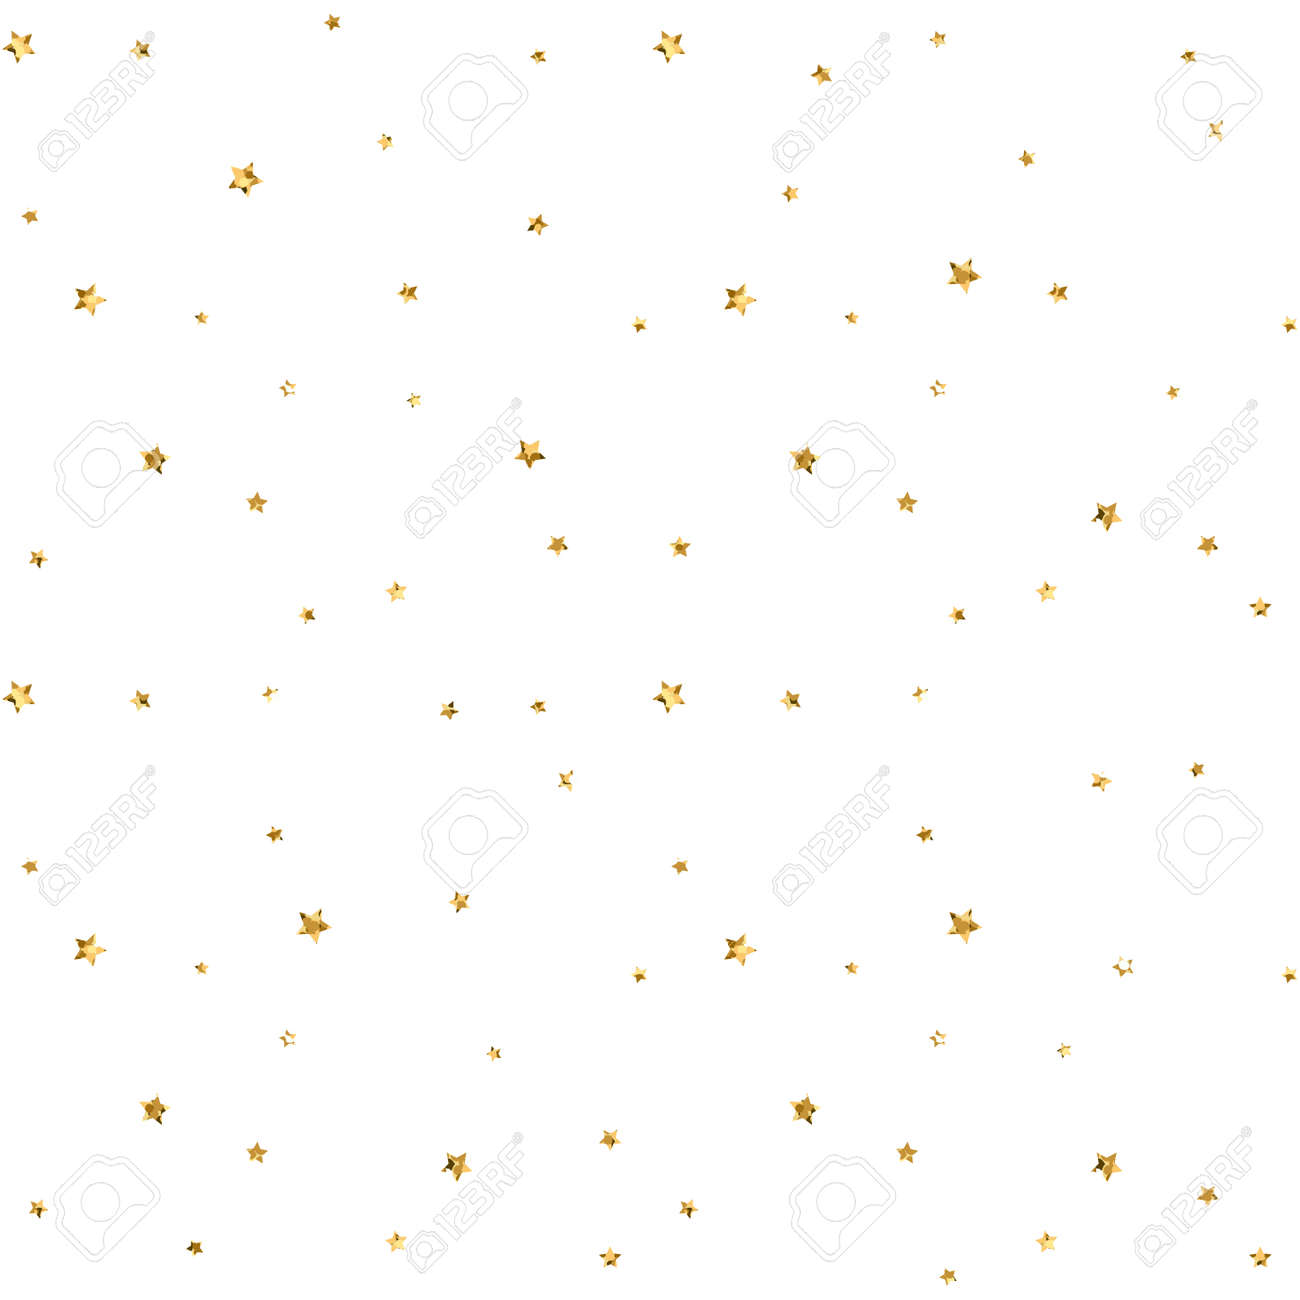 Stars Seamless Pattern Gold And White Retro Background Abstract Bright Golden Design For Wallpaper